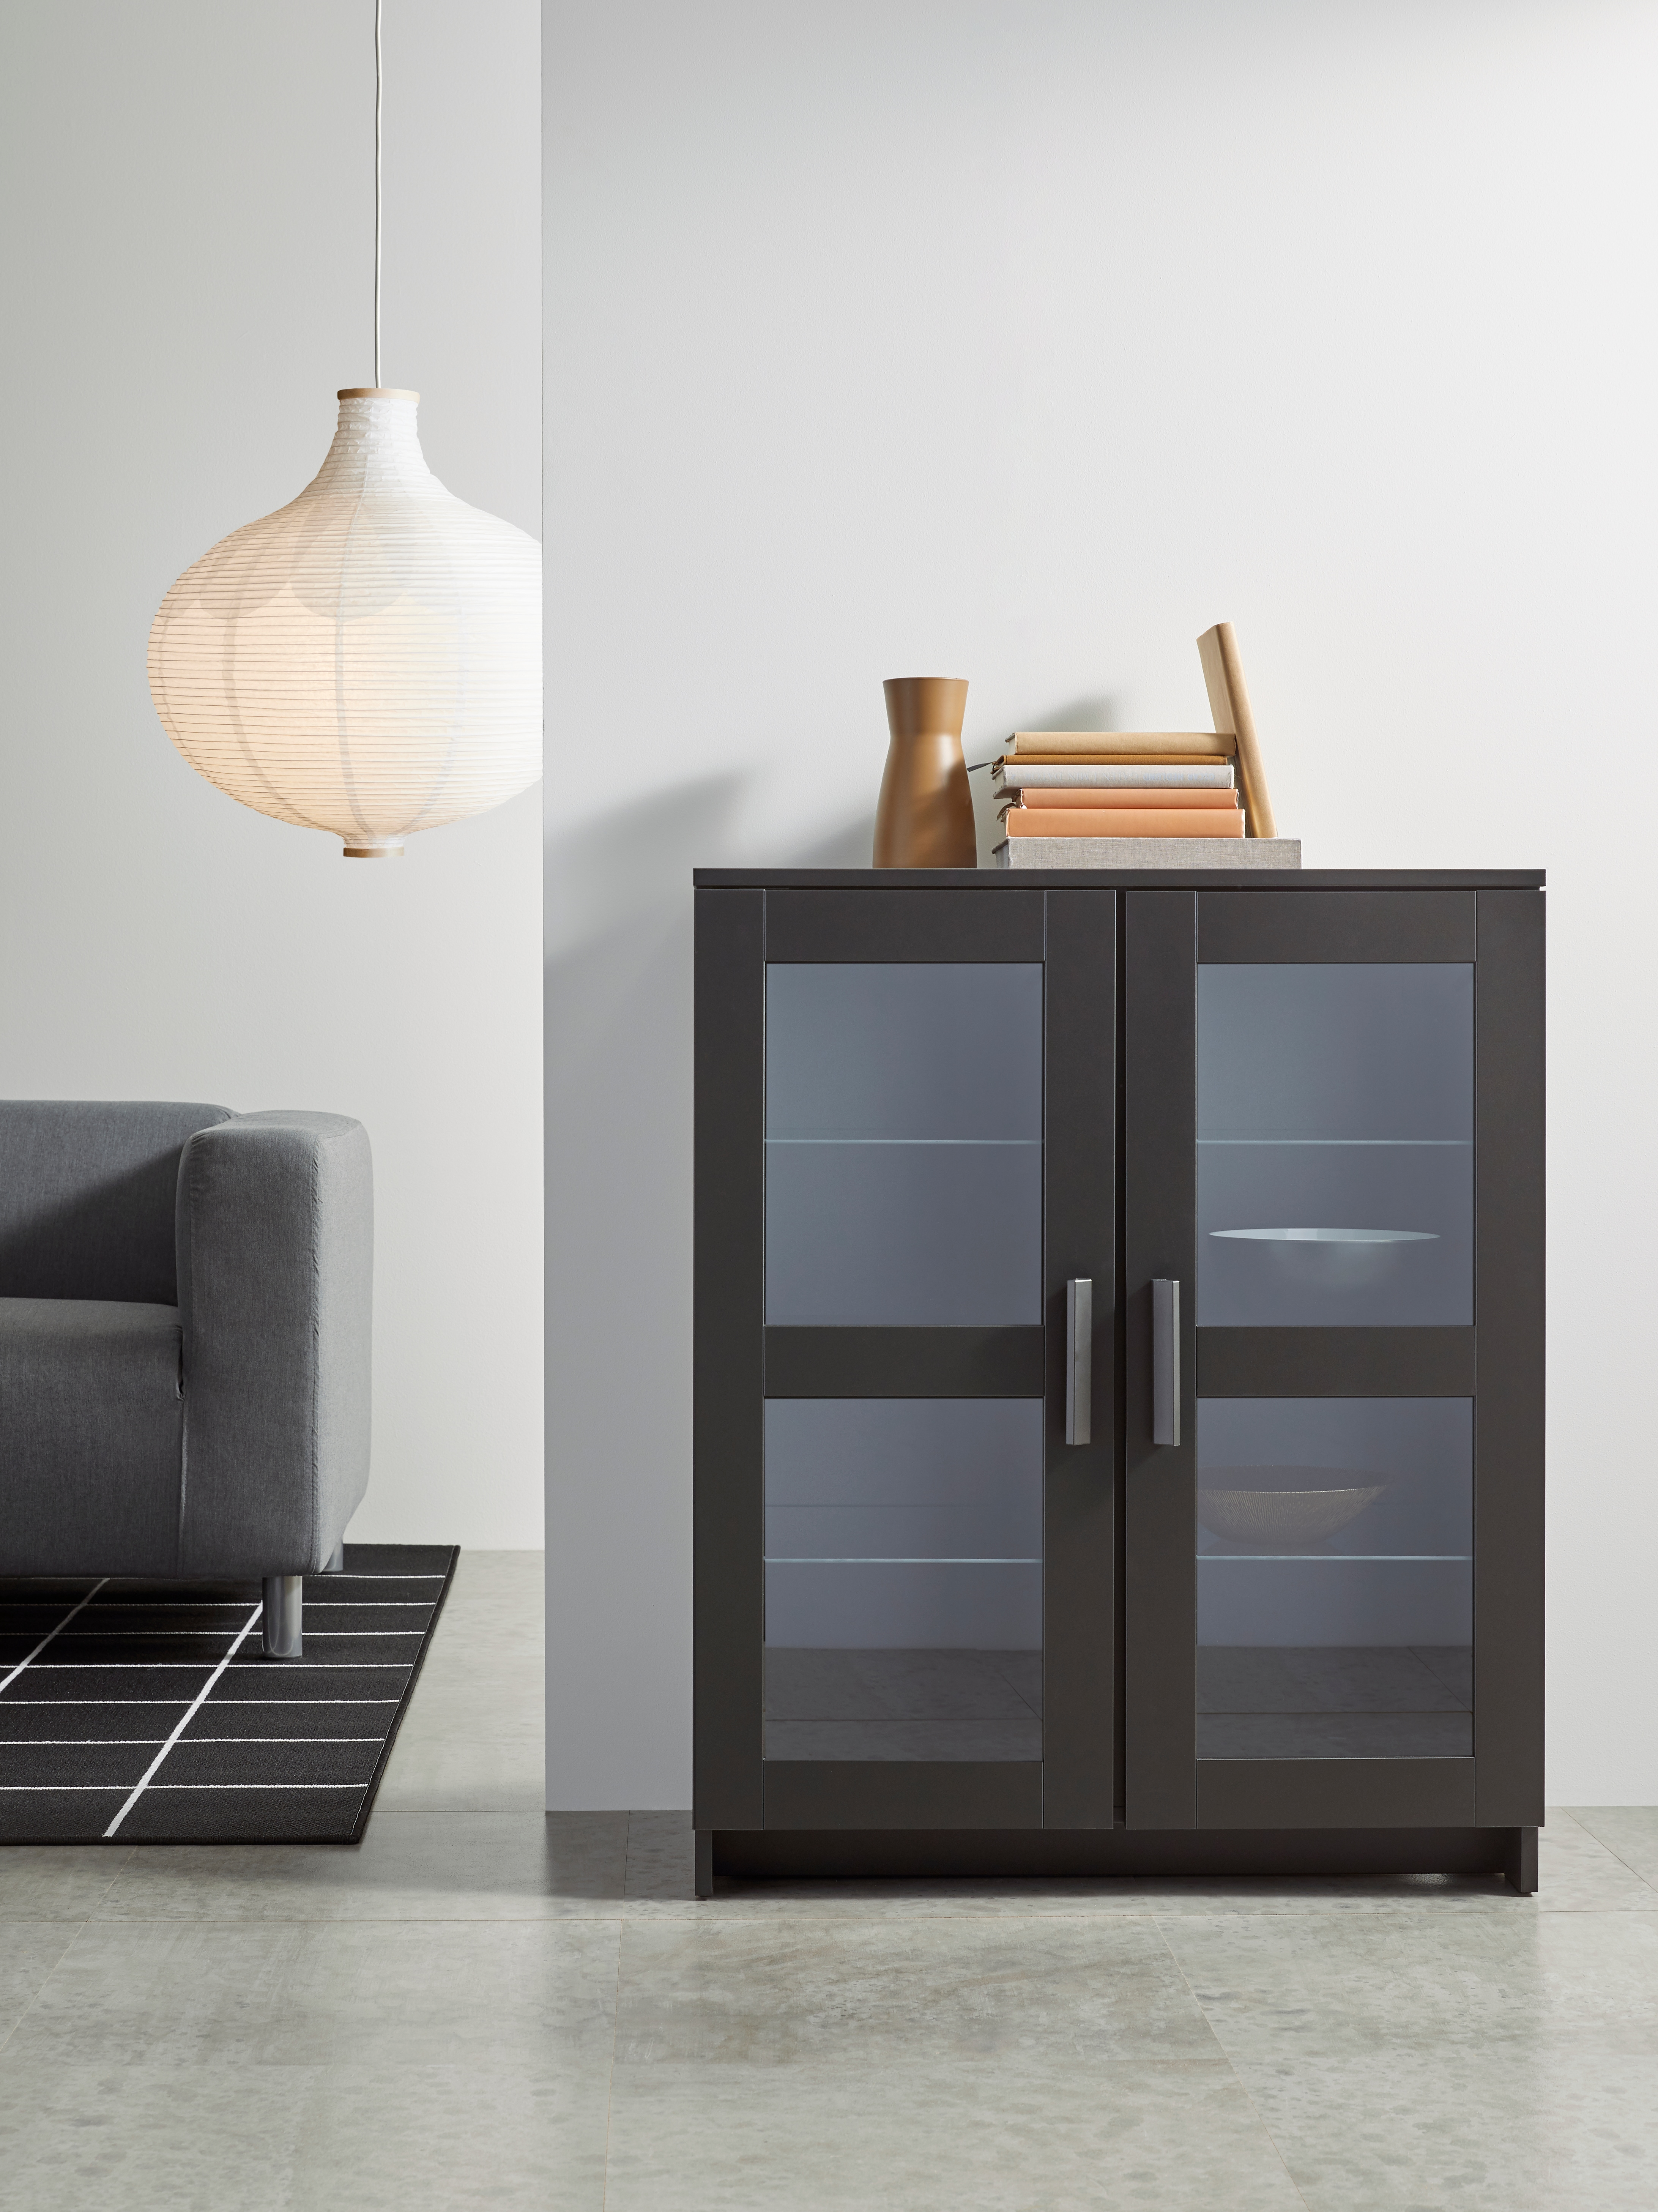 A glass/black BRIMNES cabinet with doors has decorative bowls inside and books on top. It is in a display-style living room.